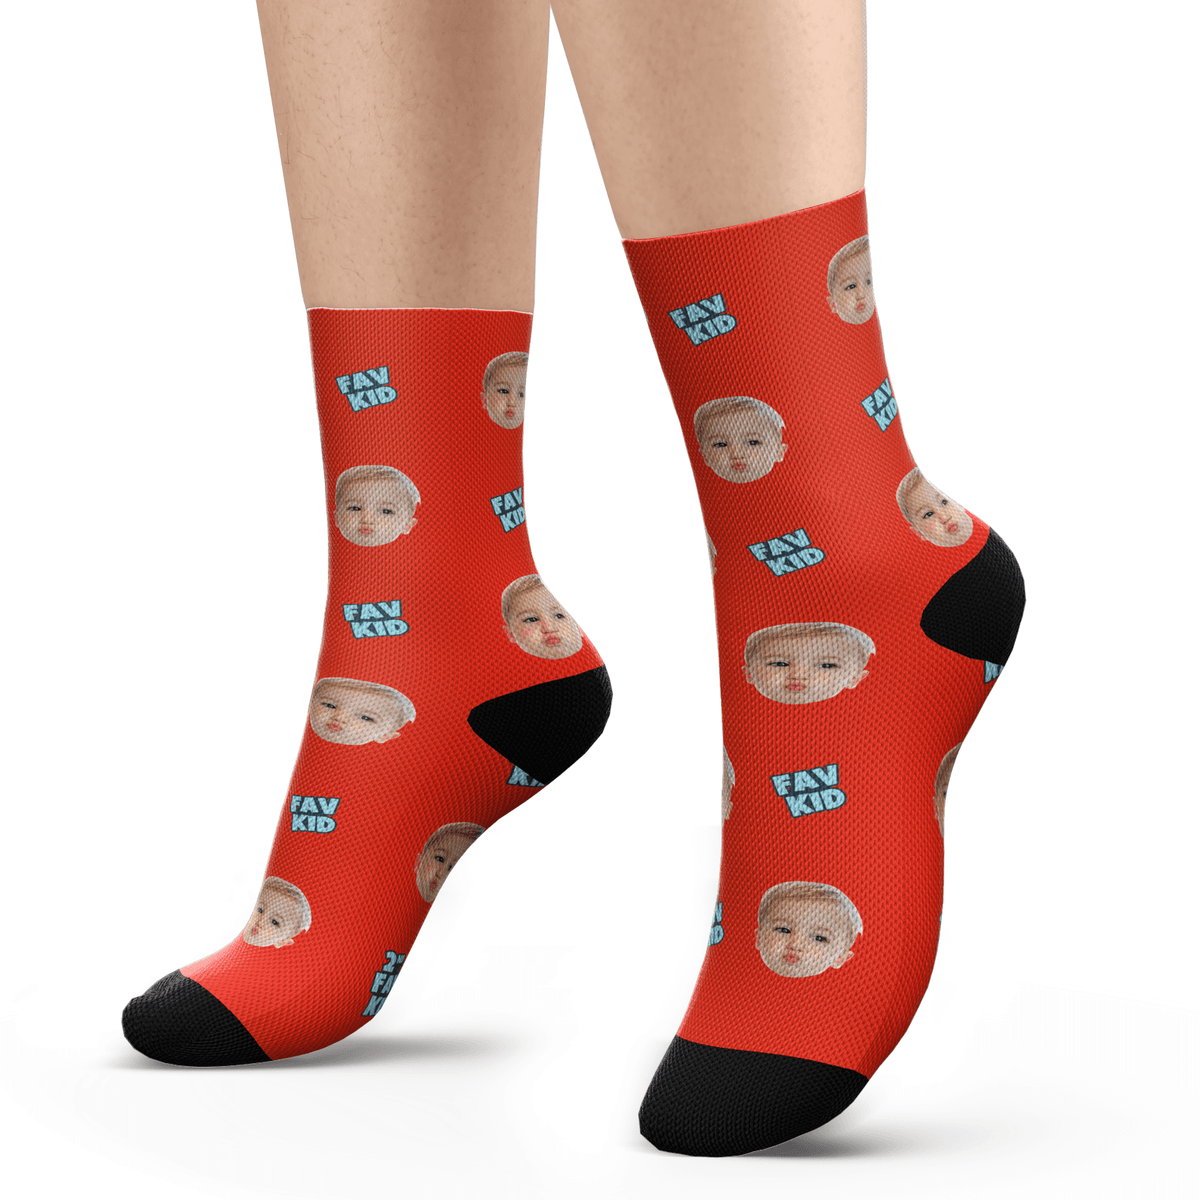 Custom Fav Kid Photo Socks